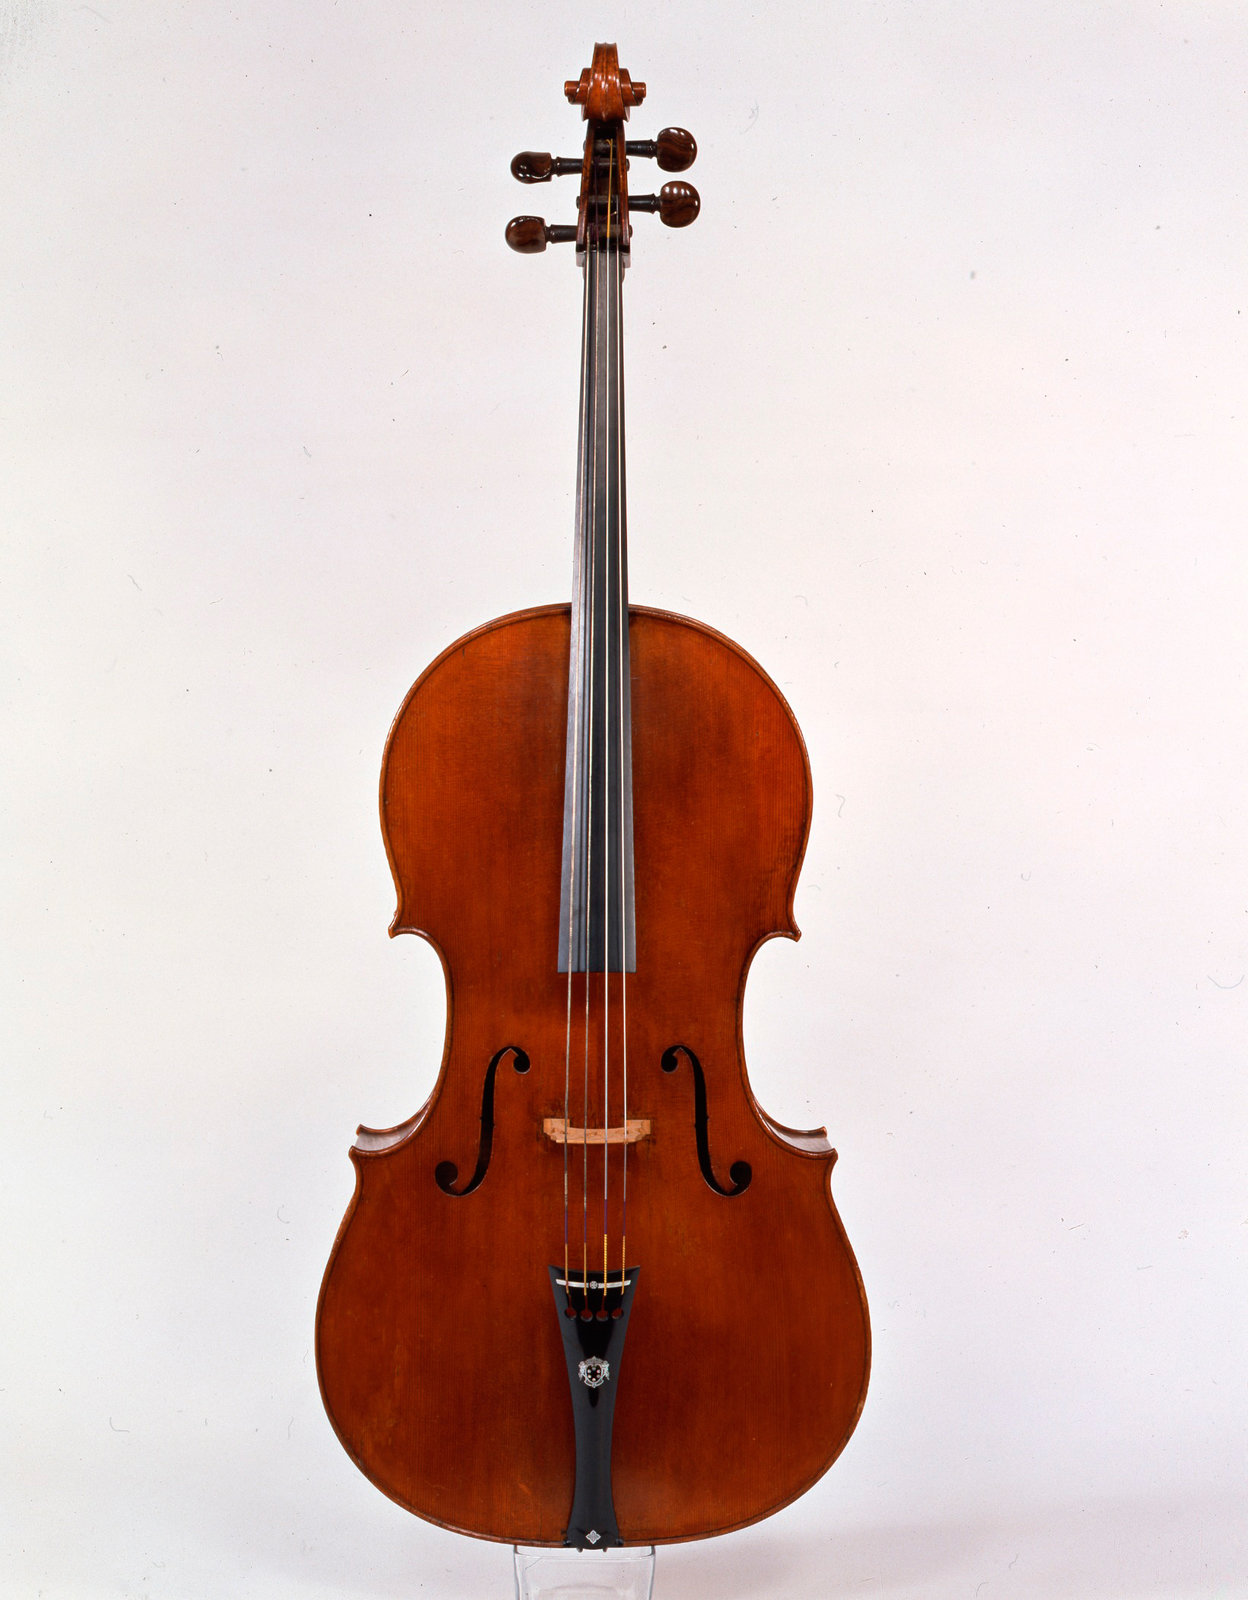 Violoncello, 1690, Antonio Stradivari, [Stradivari adopted several models and sizes for his cellos during his activity. This instrument is one of the only three that survive with the original very large proportions that he adopted in his early production. The large size of the soundbox allowed a deeper tone in the bass, and was later abandoned probably due to innovations in the making of strings.It was made in 1690 as a gift to Grand Prince Ferdinando de' Medici (1663-1713), and was part of quintet formed by two violins (one surviving in Rome, Accademia di S. Cecilia), an alto viola (now in Washington, Library of Congress) and a tenor viola (Florence, Collezione Cherubini).A rare early document survives about the sound of this instrument: it is a letter written as soon as the instruments were delivered stating that «all the virtuosi [of the gran-ducal court] […] are of the same mind in approving them as perfect, but above all speaking of the violoncello they frankly confess they have never heard a more pleasing or more sonorous one.], Galleria dell'Accademia Dipartimento degli strumenti Musicali, Firenze, CC BY-NC-SA